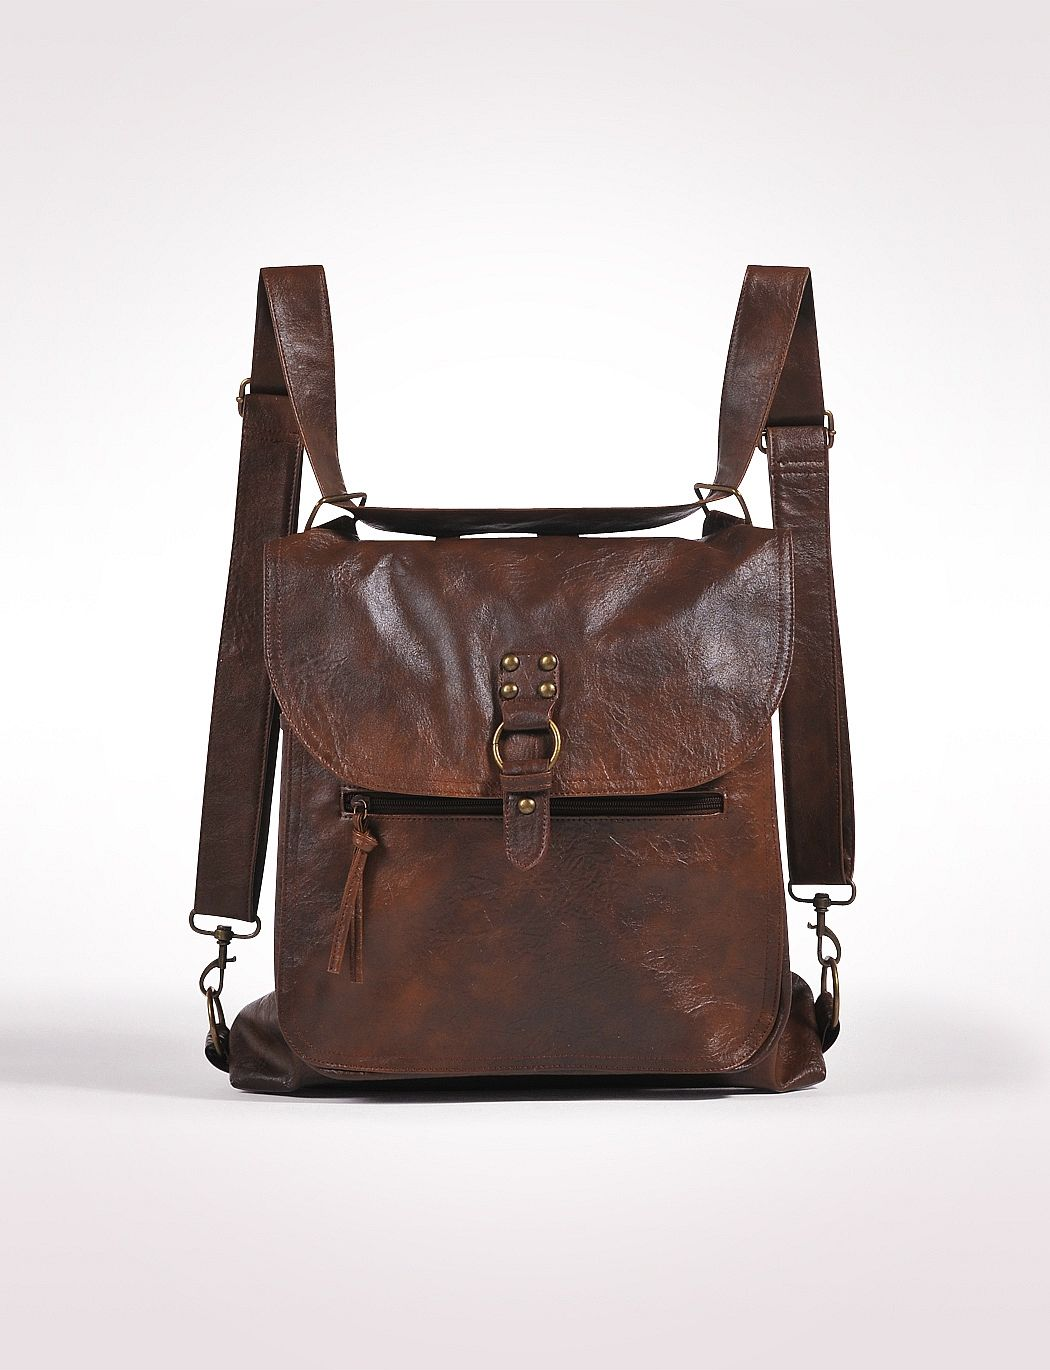 brown leather convertible bag with traditional purse style and easy convert. d1b925cfebfe8